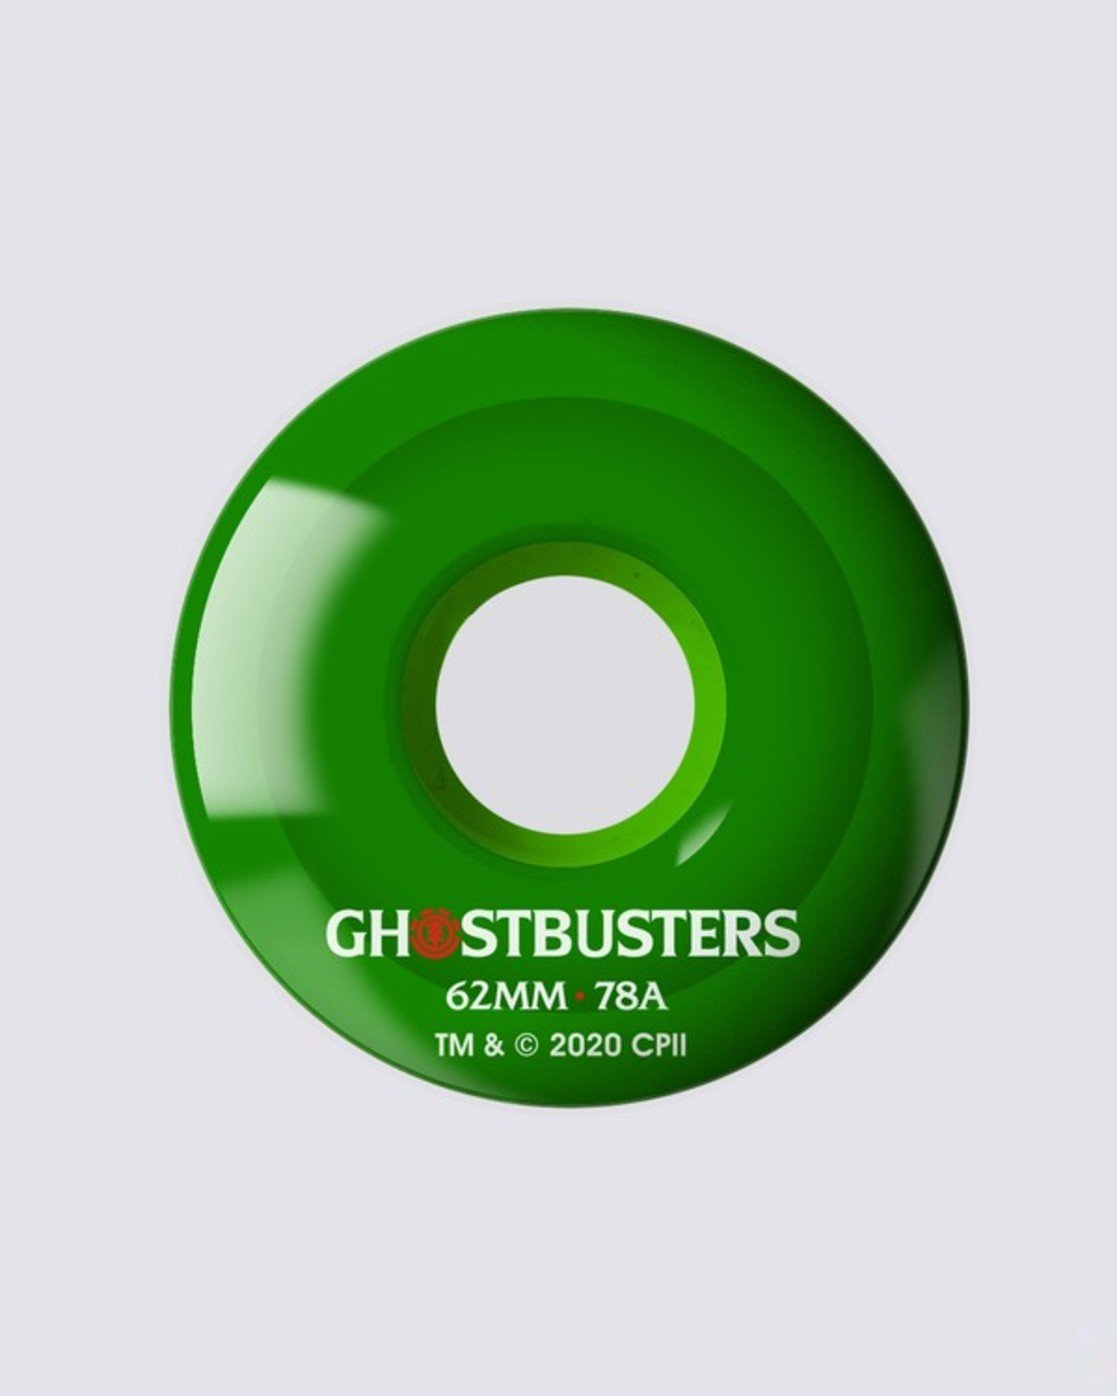 1 Slimer 62MM Wheels  WHLG3GBF Element